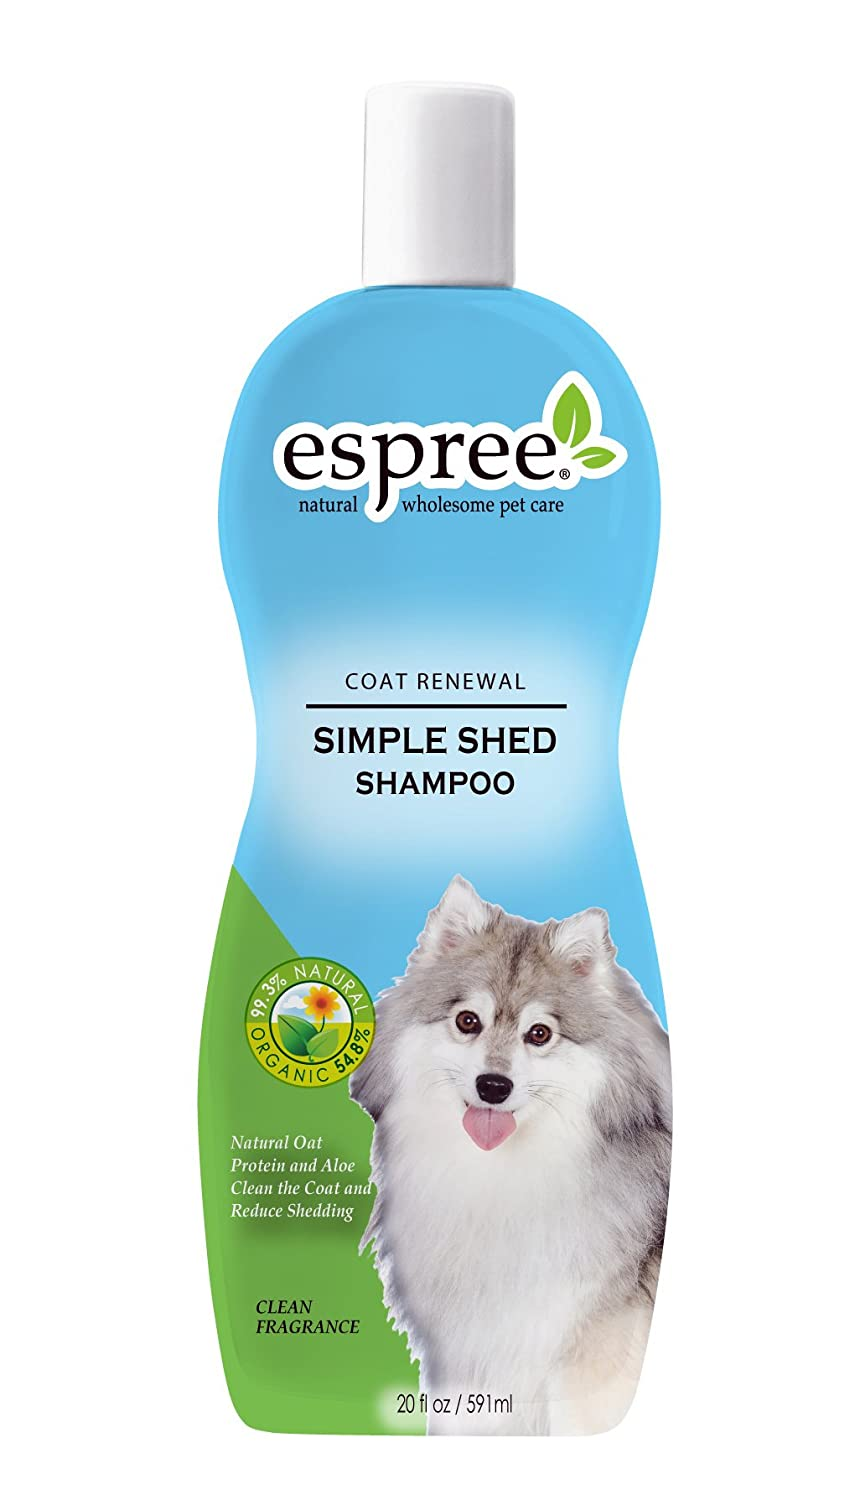 Espree Coat renovación Simple cobertizo Champú: Amazon.es: Productos para mascotas